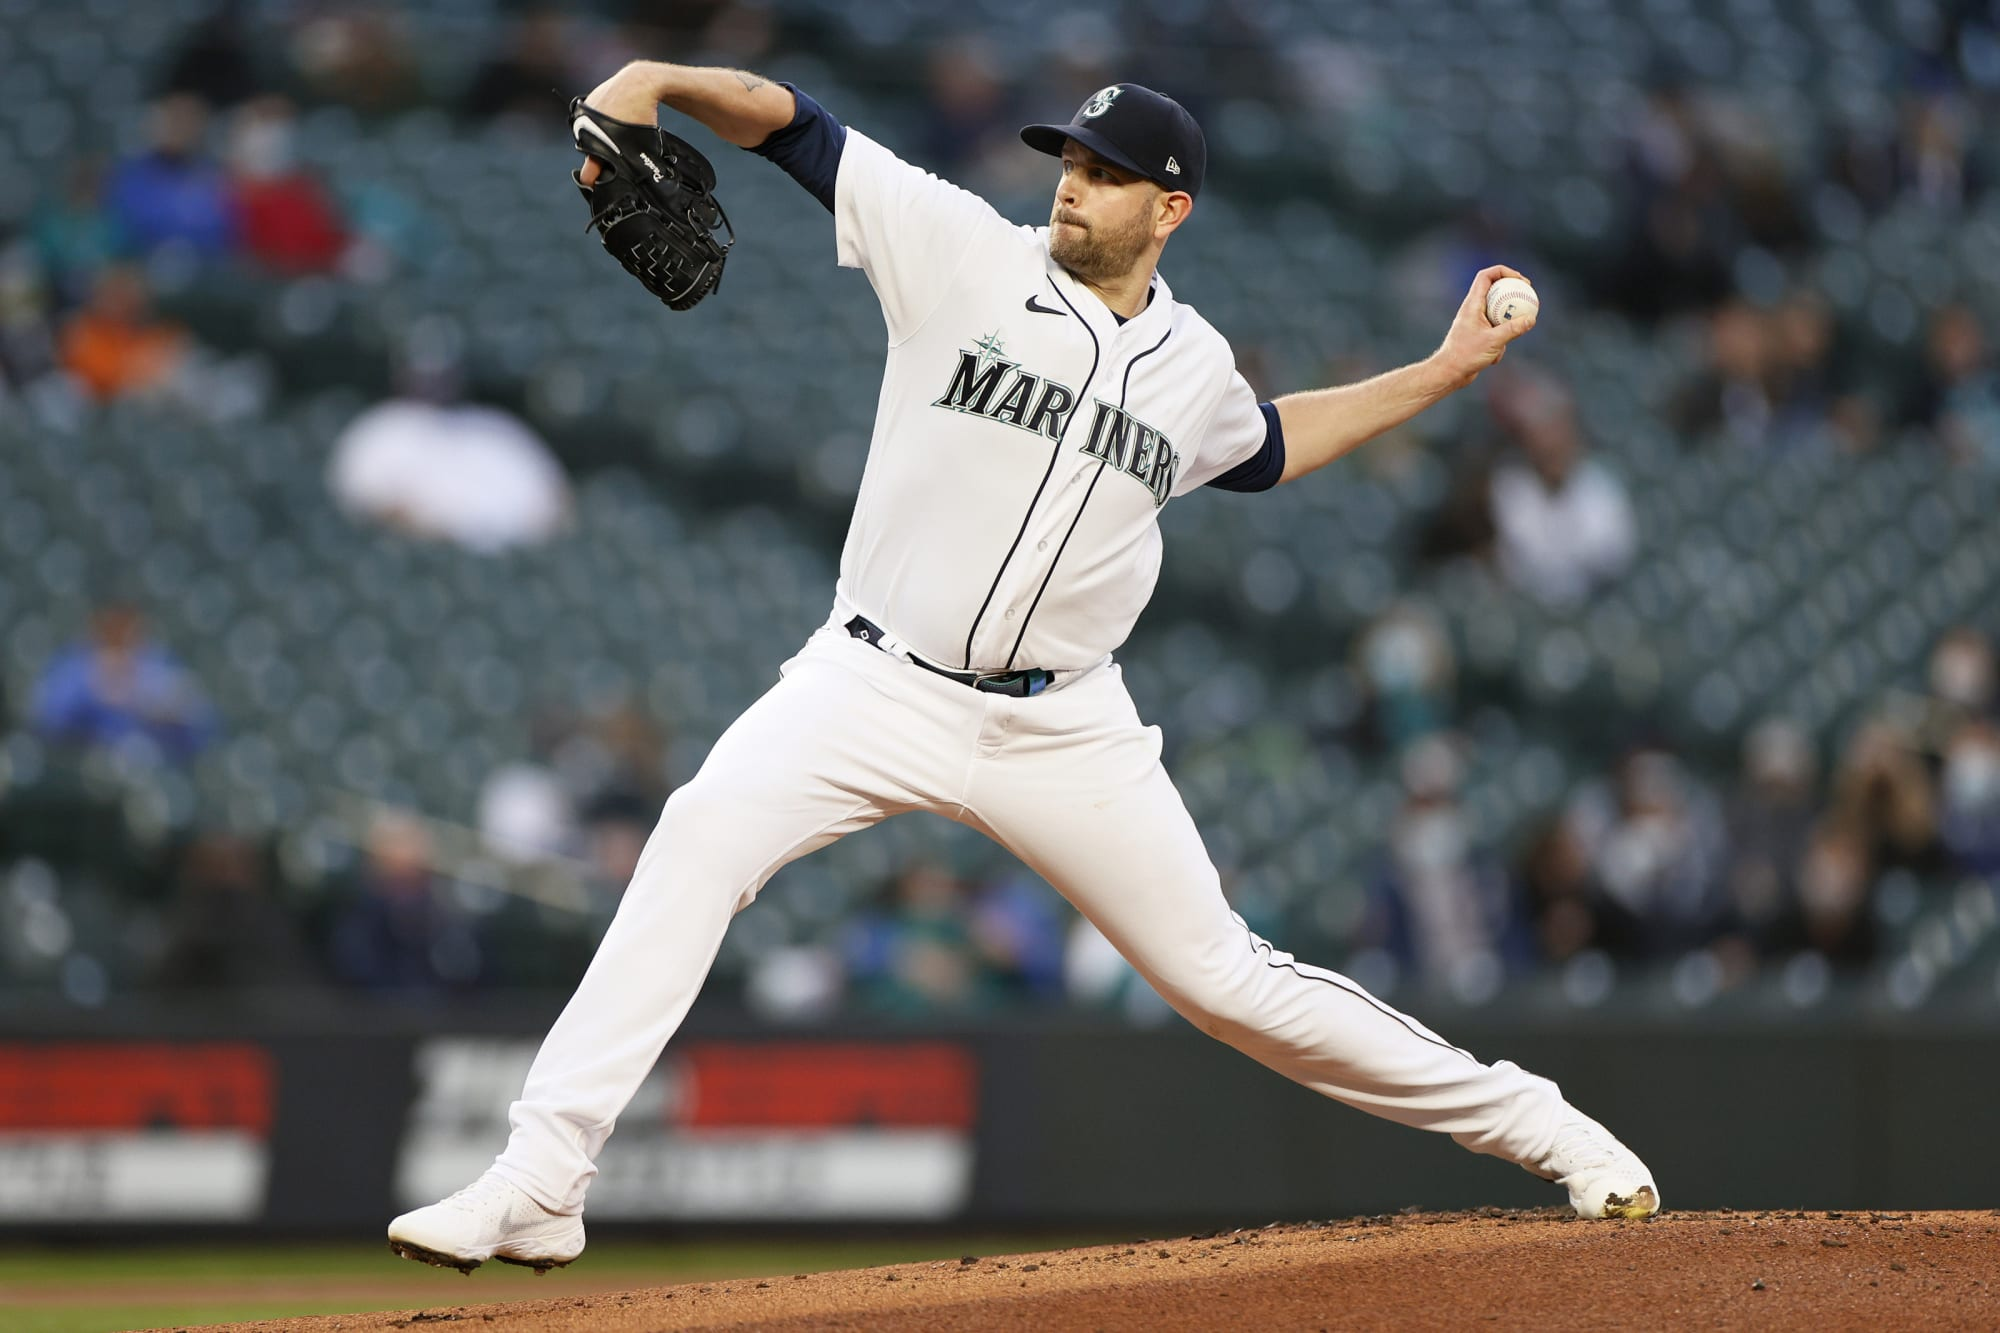 Could James Paxton be the Next Kendall Graveman for the Mariners?